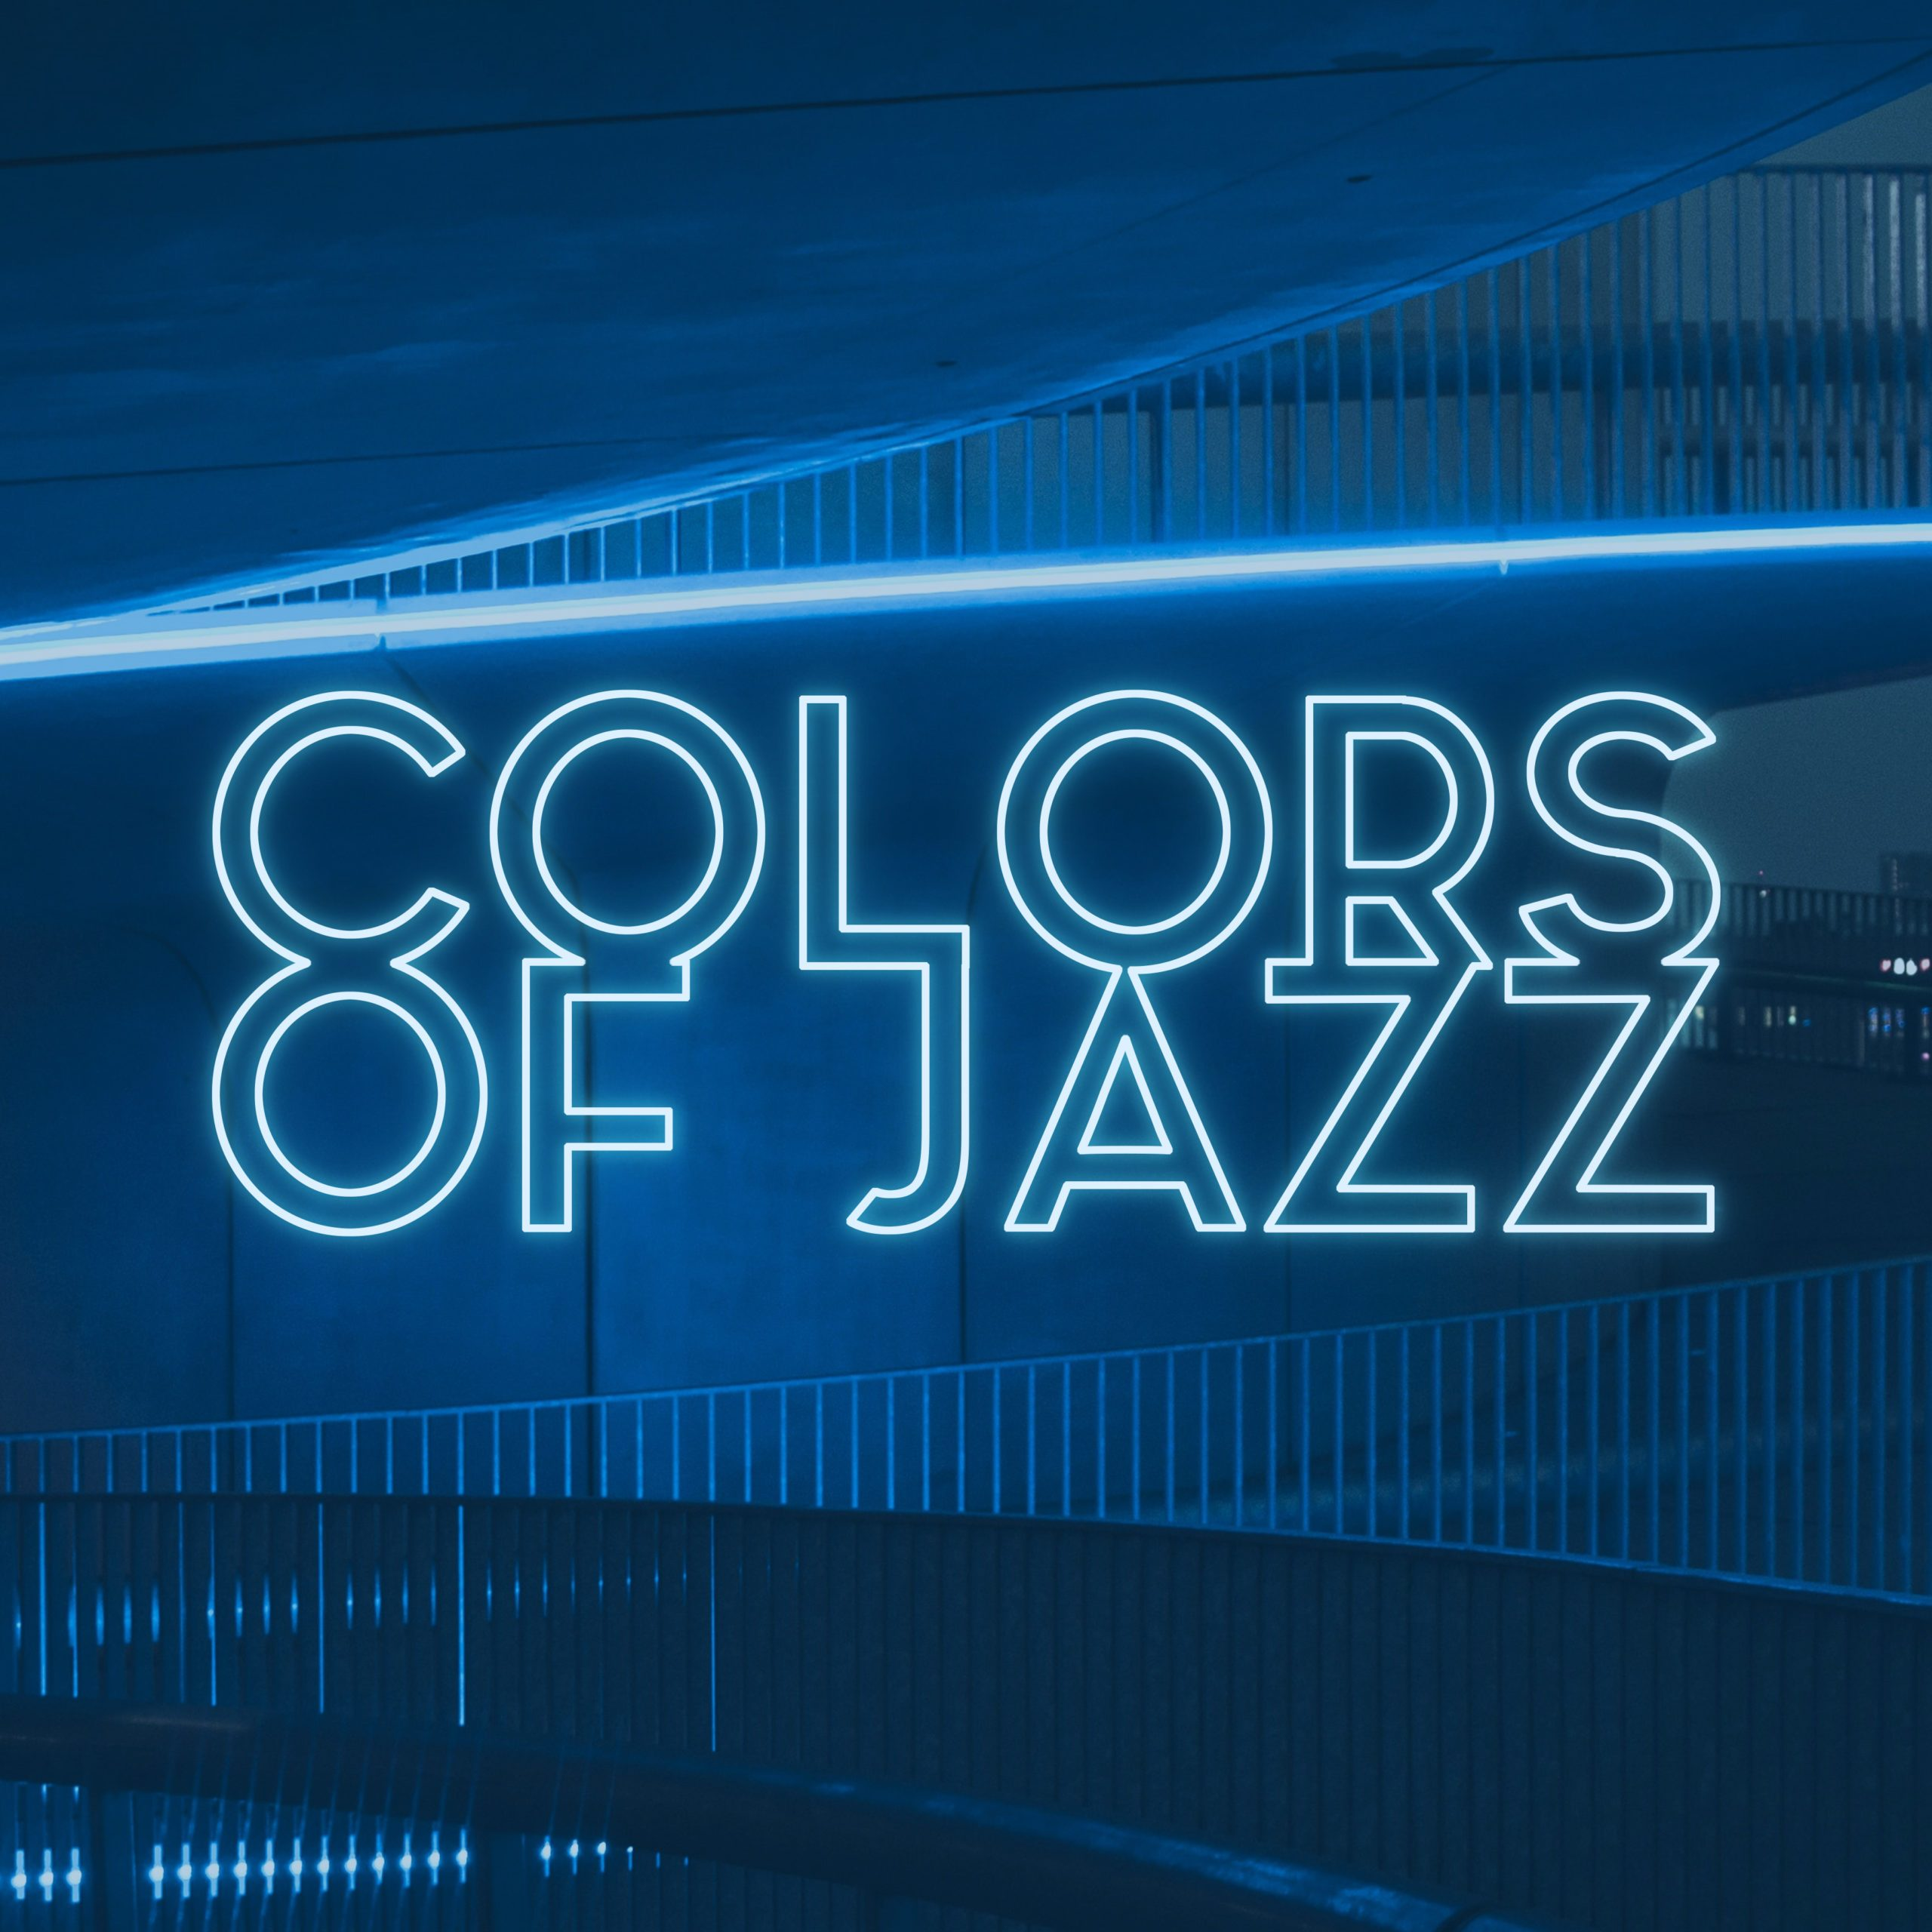 color-of-jazz-shirts-blue